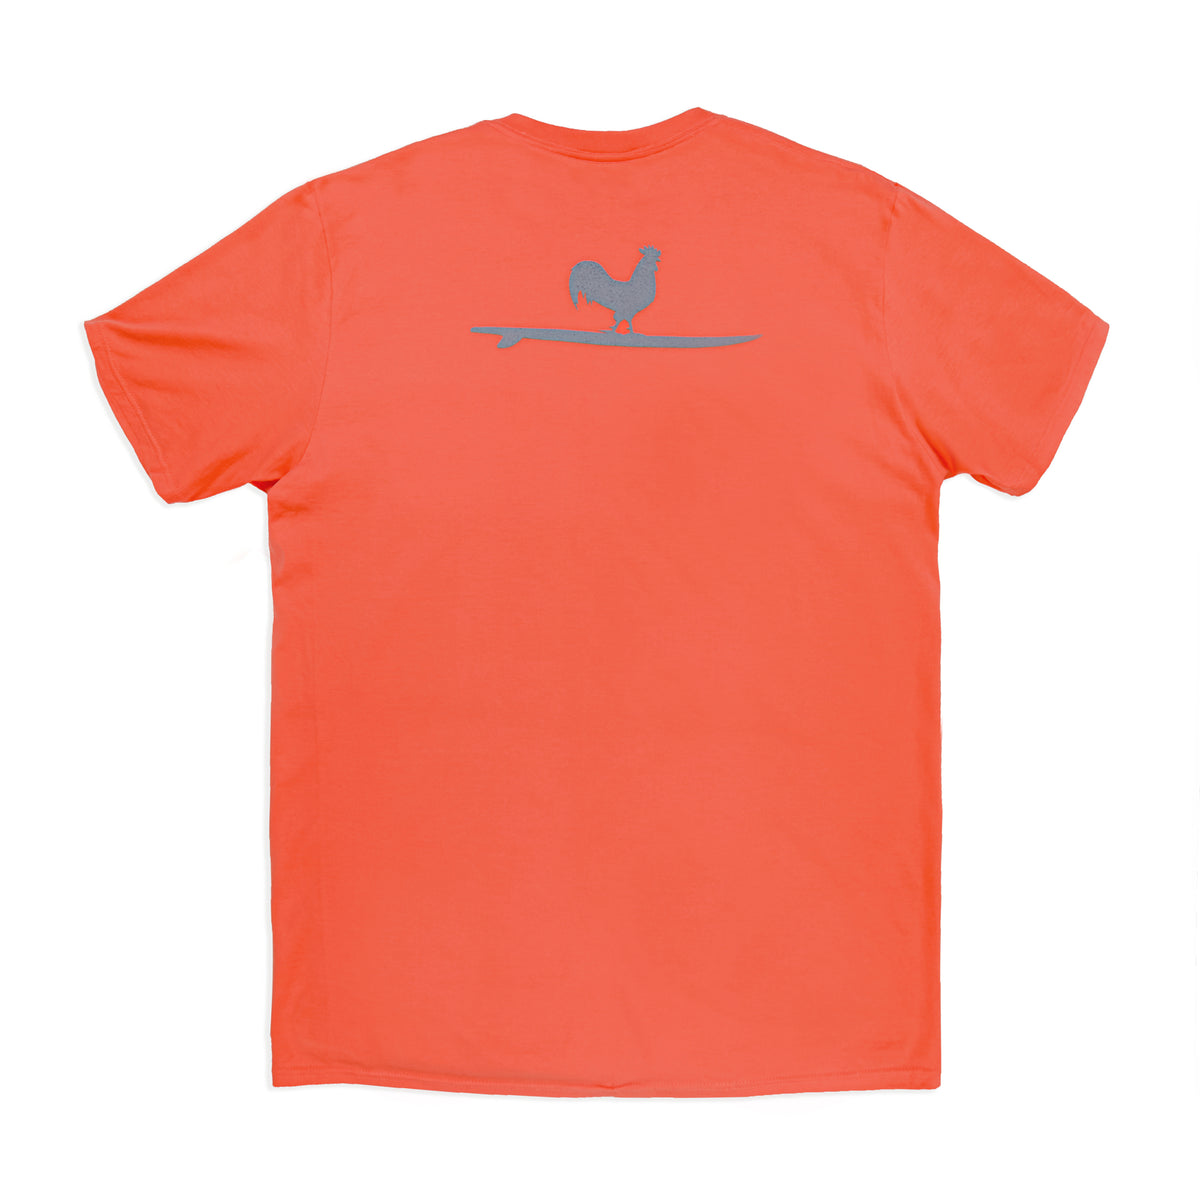 Sale - Speechless Pocket Tee